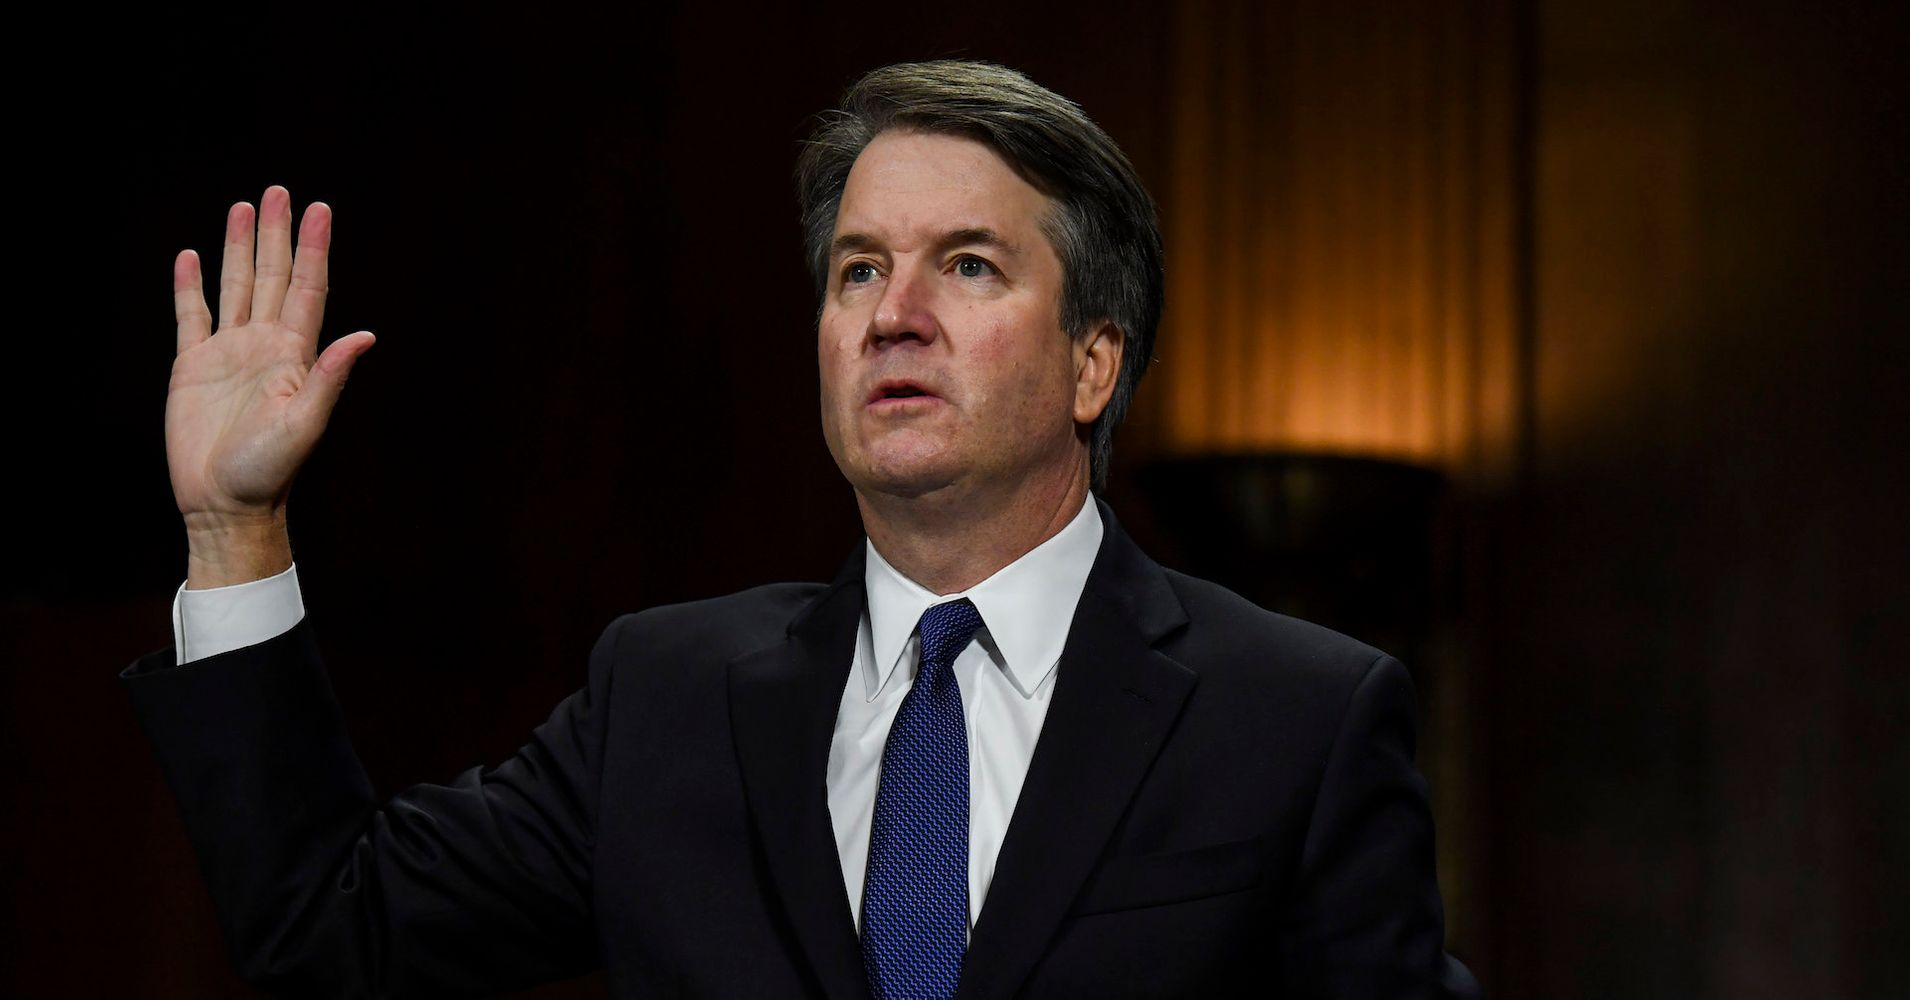 Brett Kavanaugh Nomination Moves Ahead Despite Sexual Assault Allegations